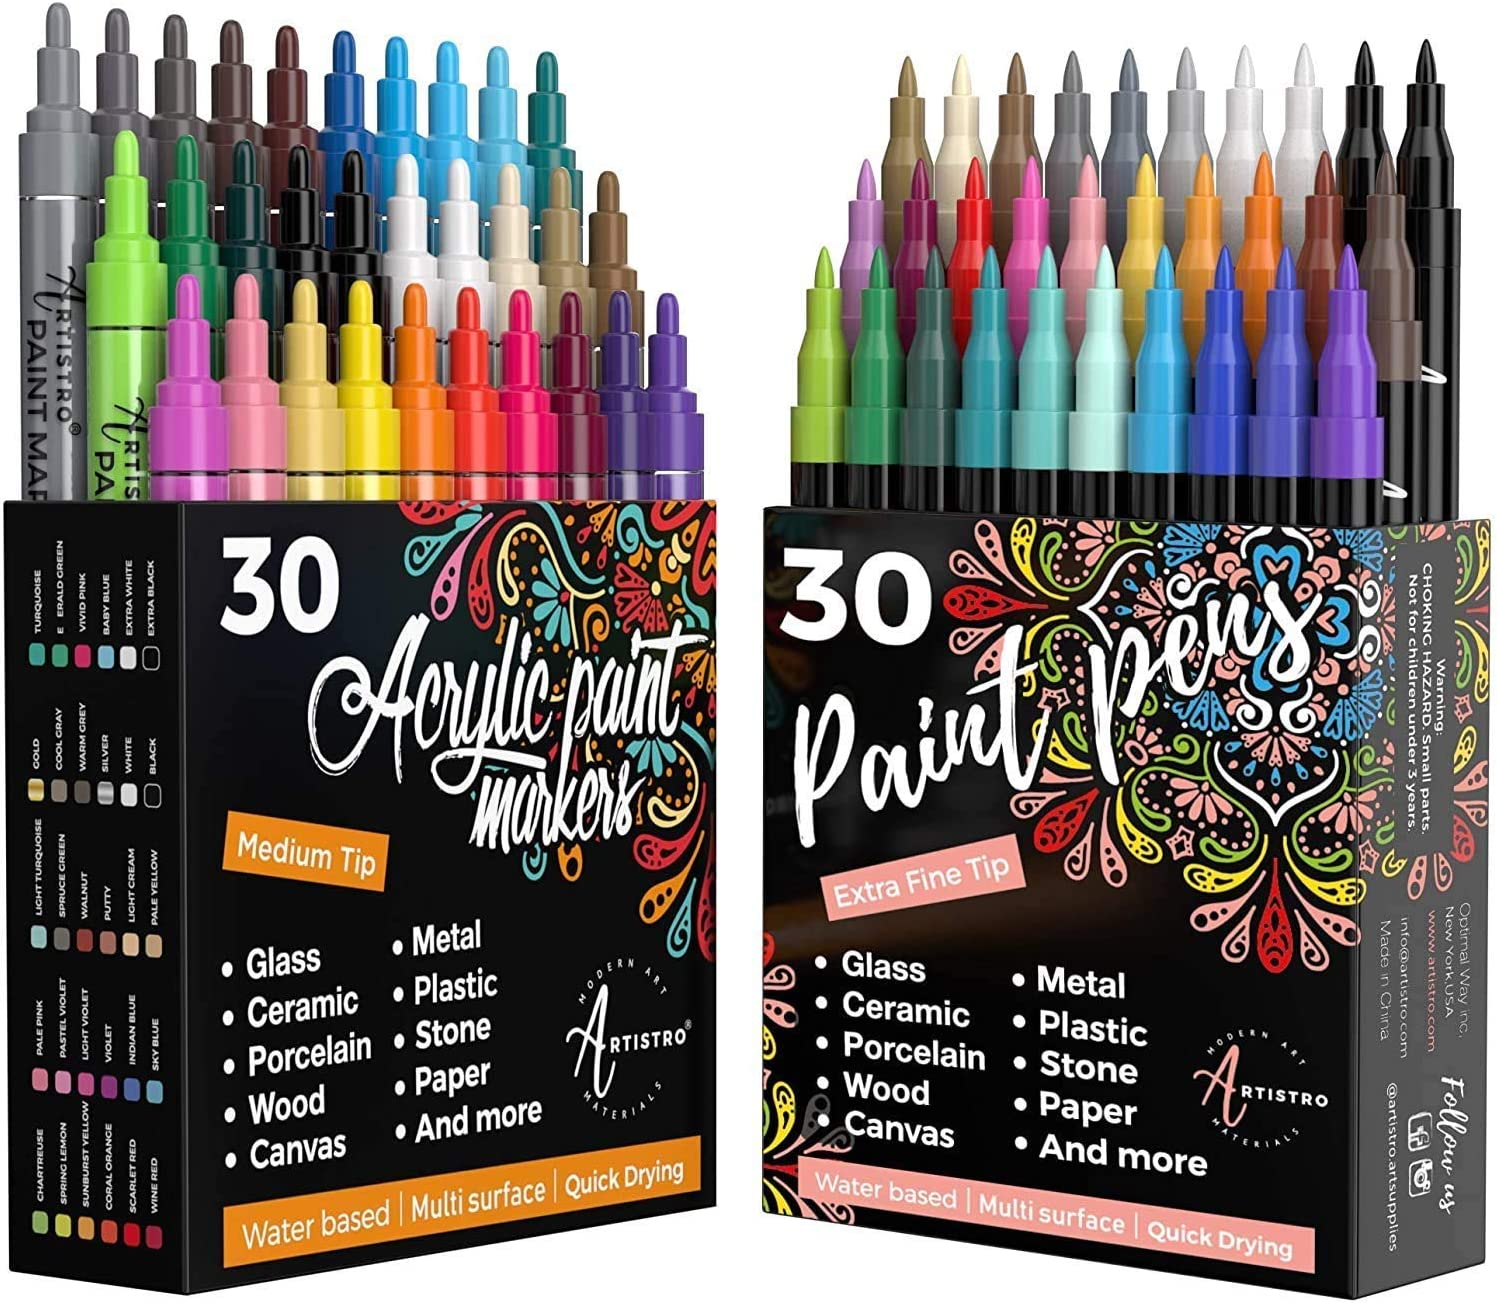 Artistro 30 Acrylic Paint Markers Medium Tip and 30 Acrylic Paint Markers Extra Fine Tip